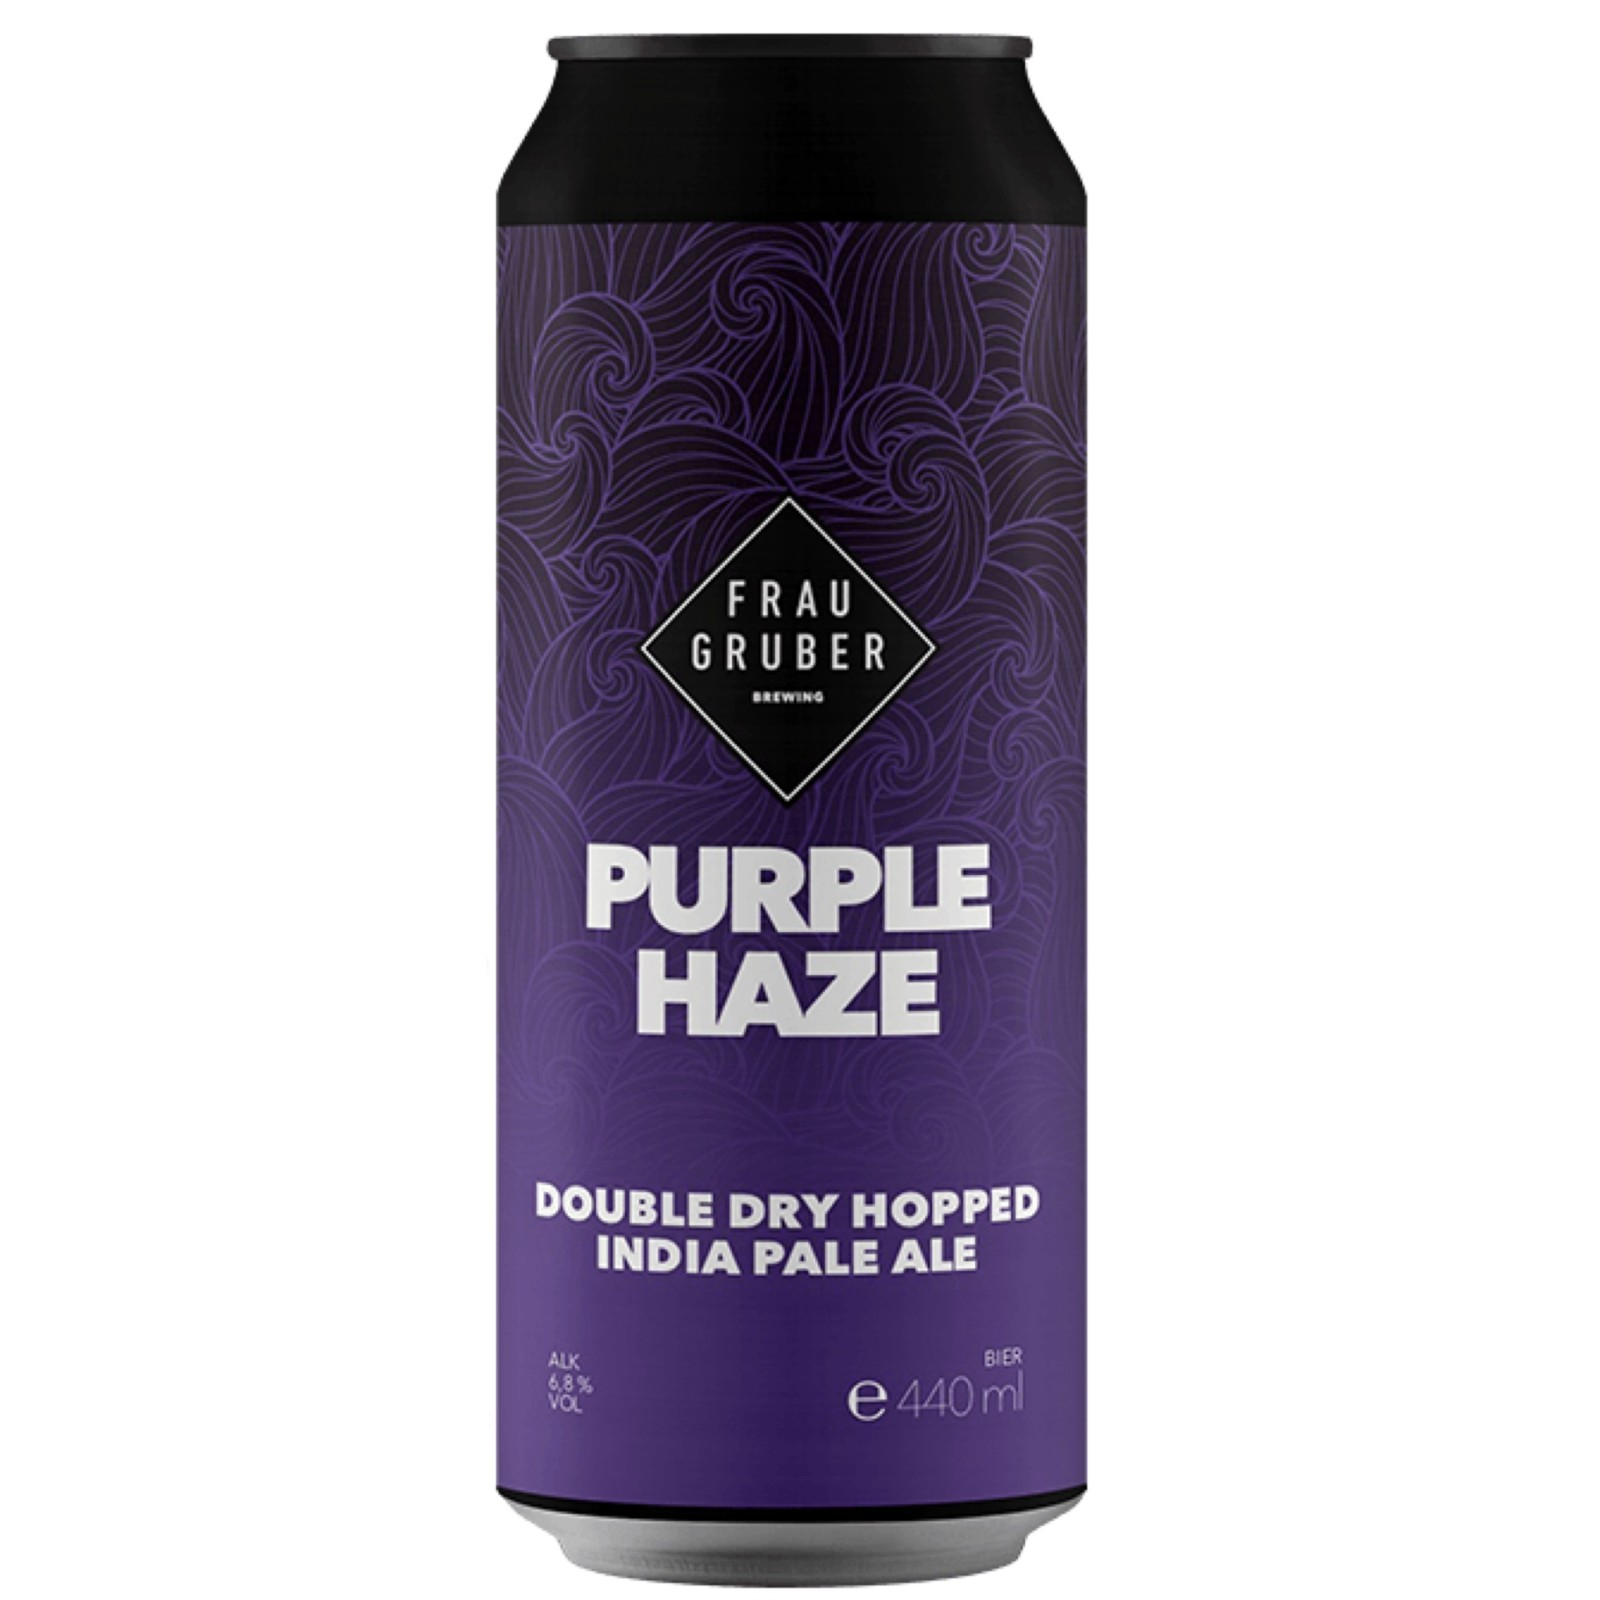 Purple Haze DDH IPA 6.8% 440ml Frau Gruber